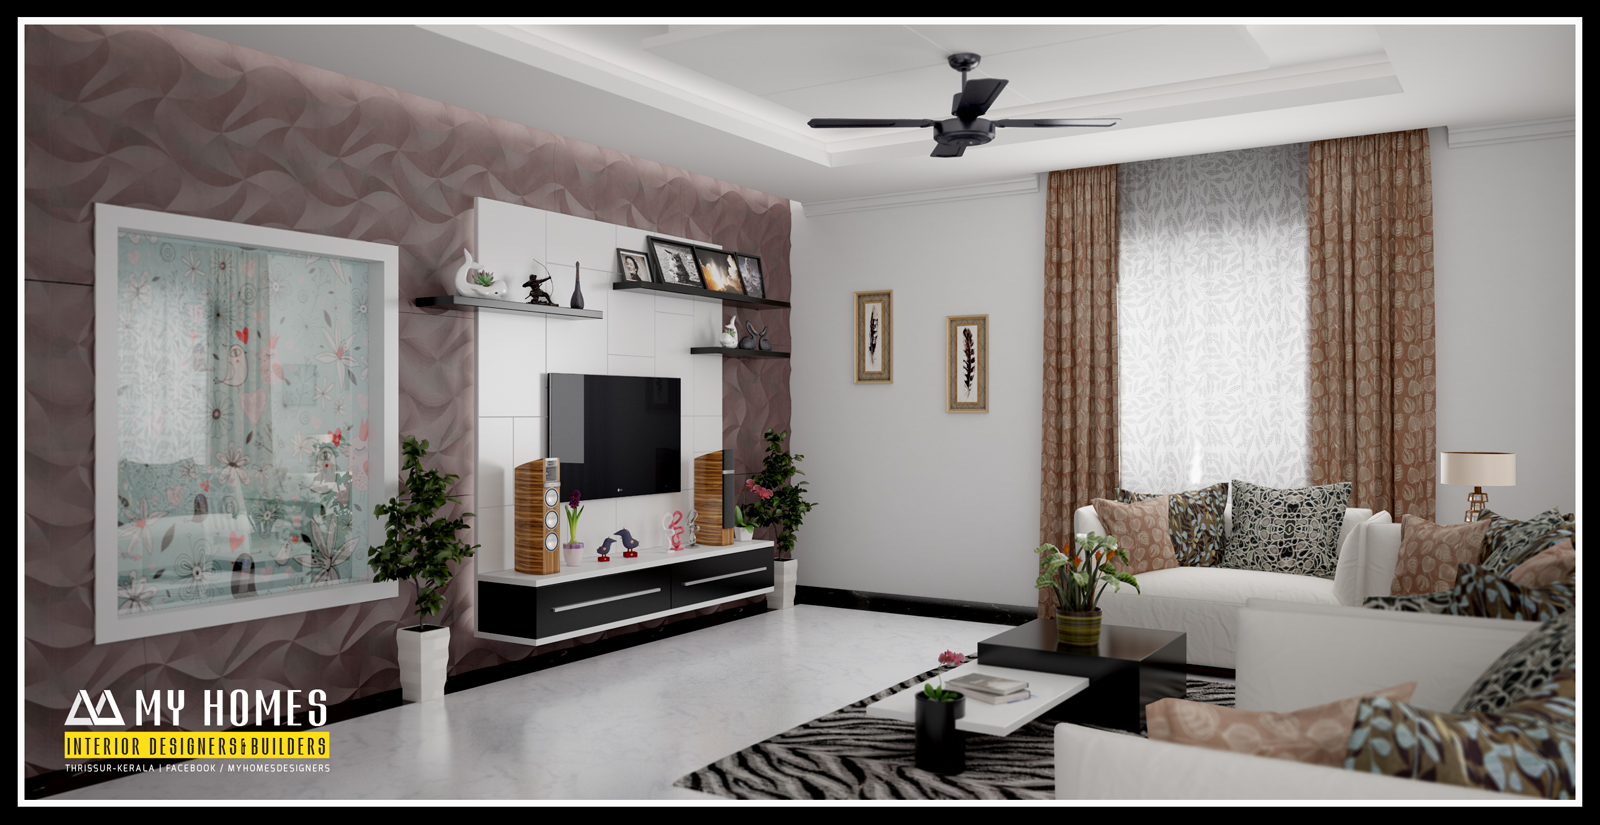 Kerala interior design ideas from designing company thrissur for Interior design plans for houses